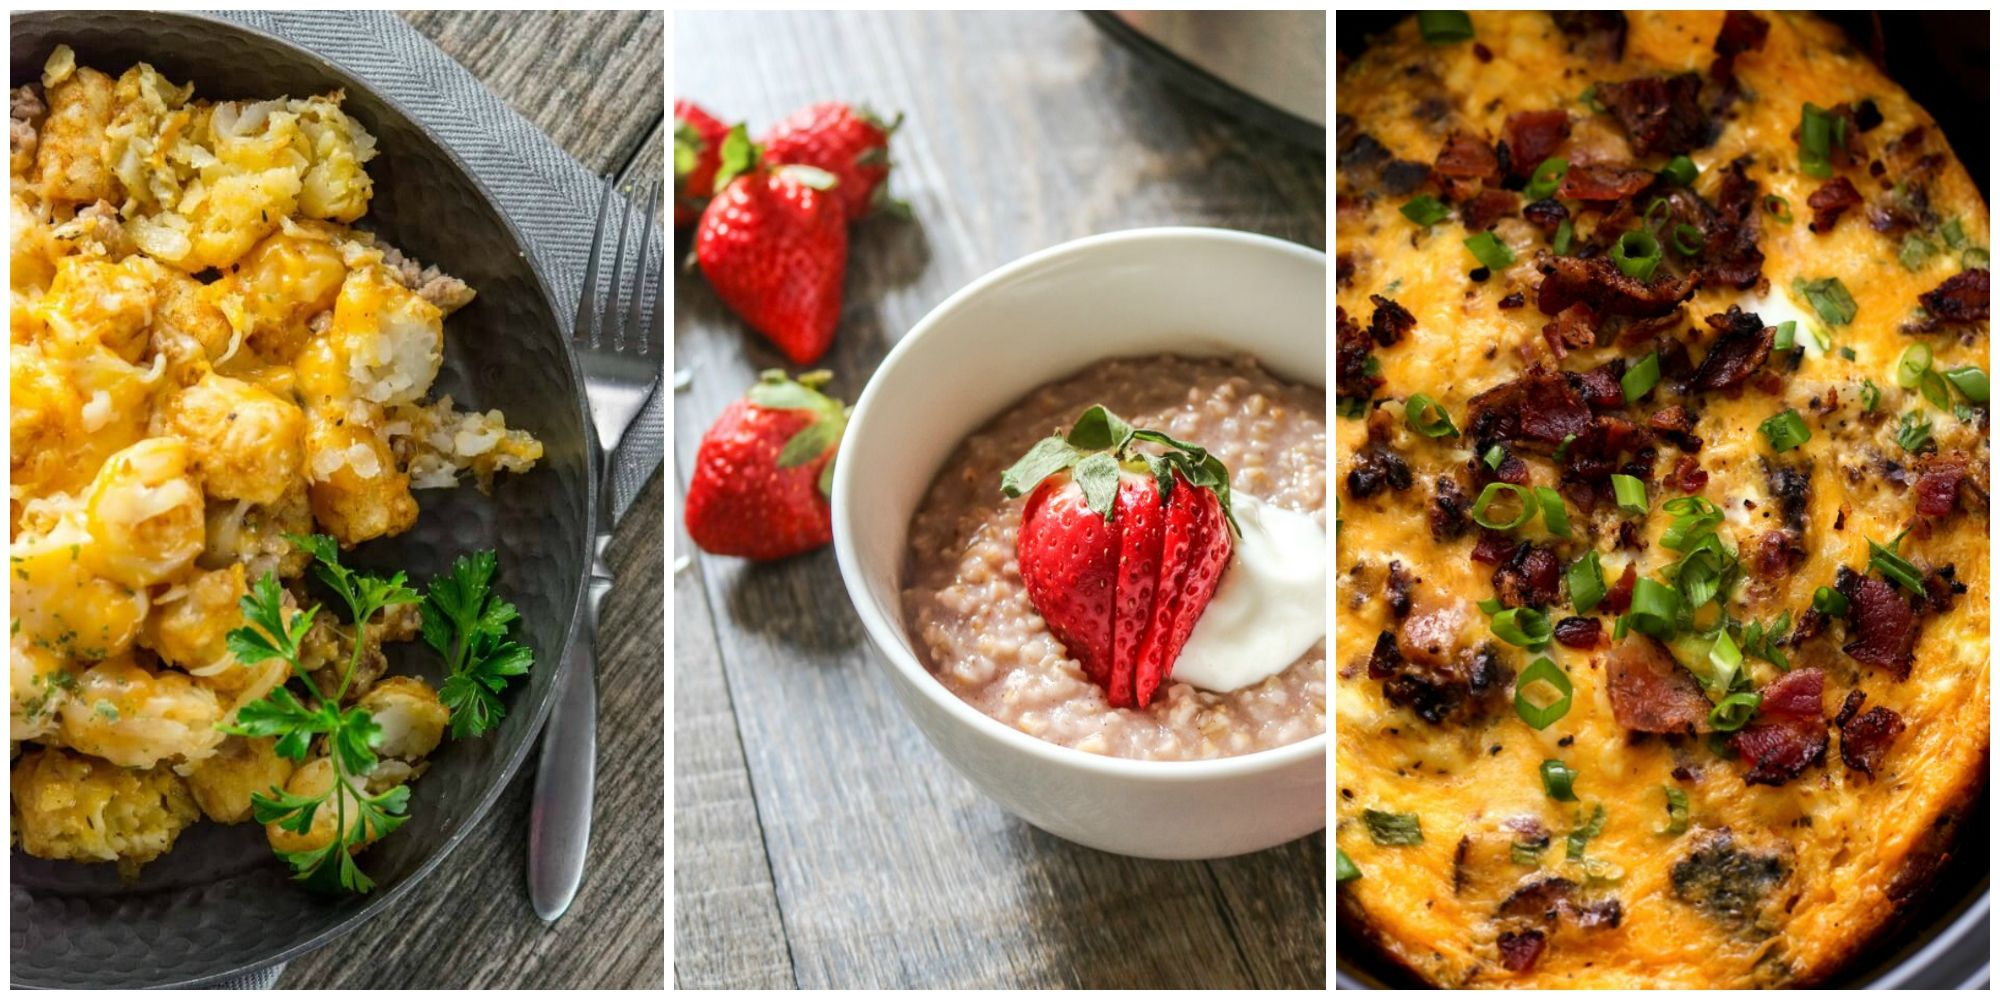 125 Easy Breakfast Recipes - Best Breakfast Ideas